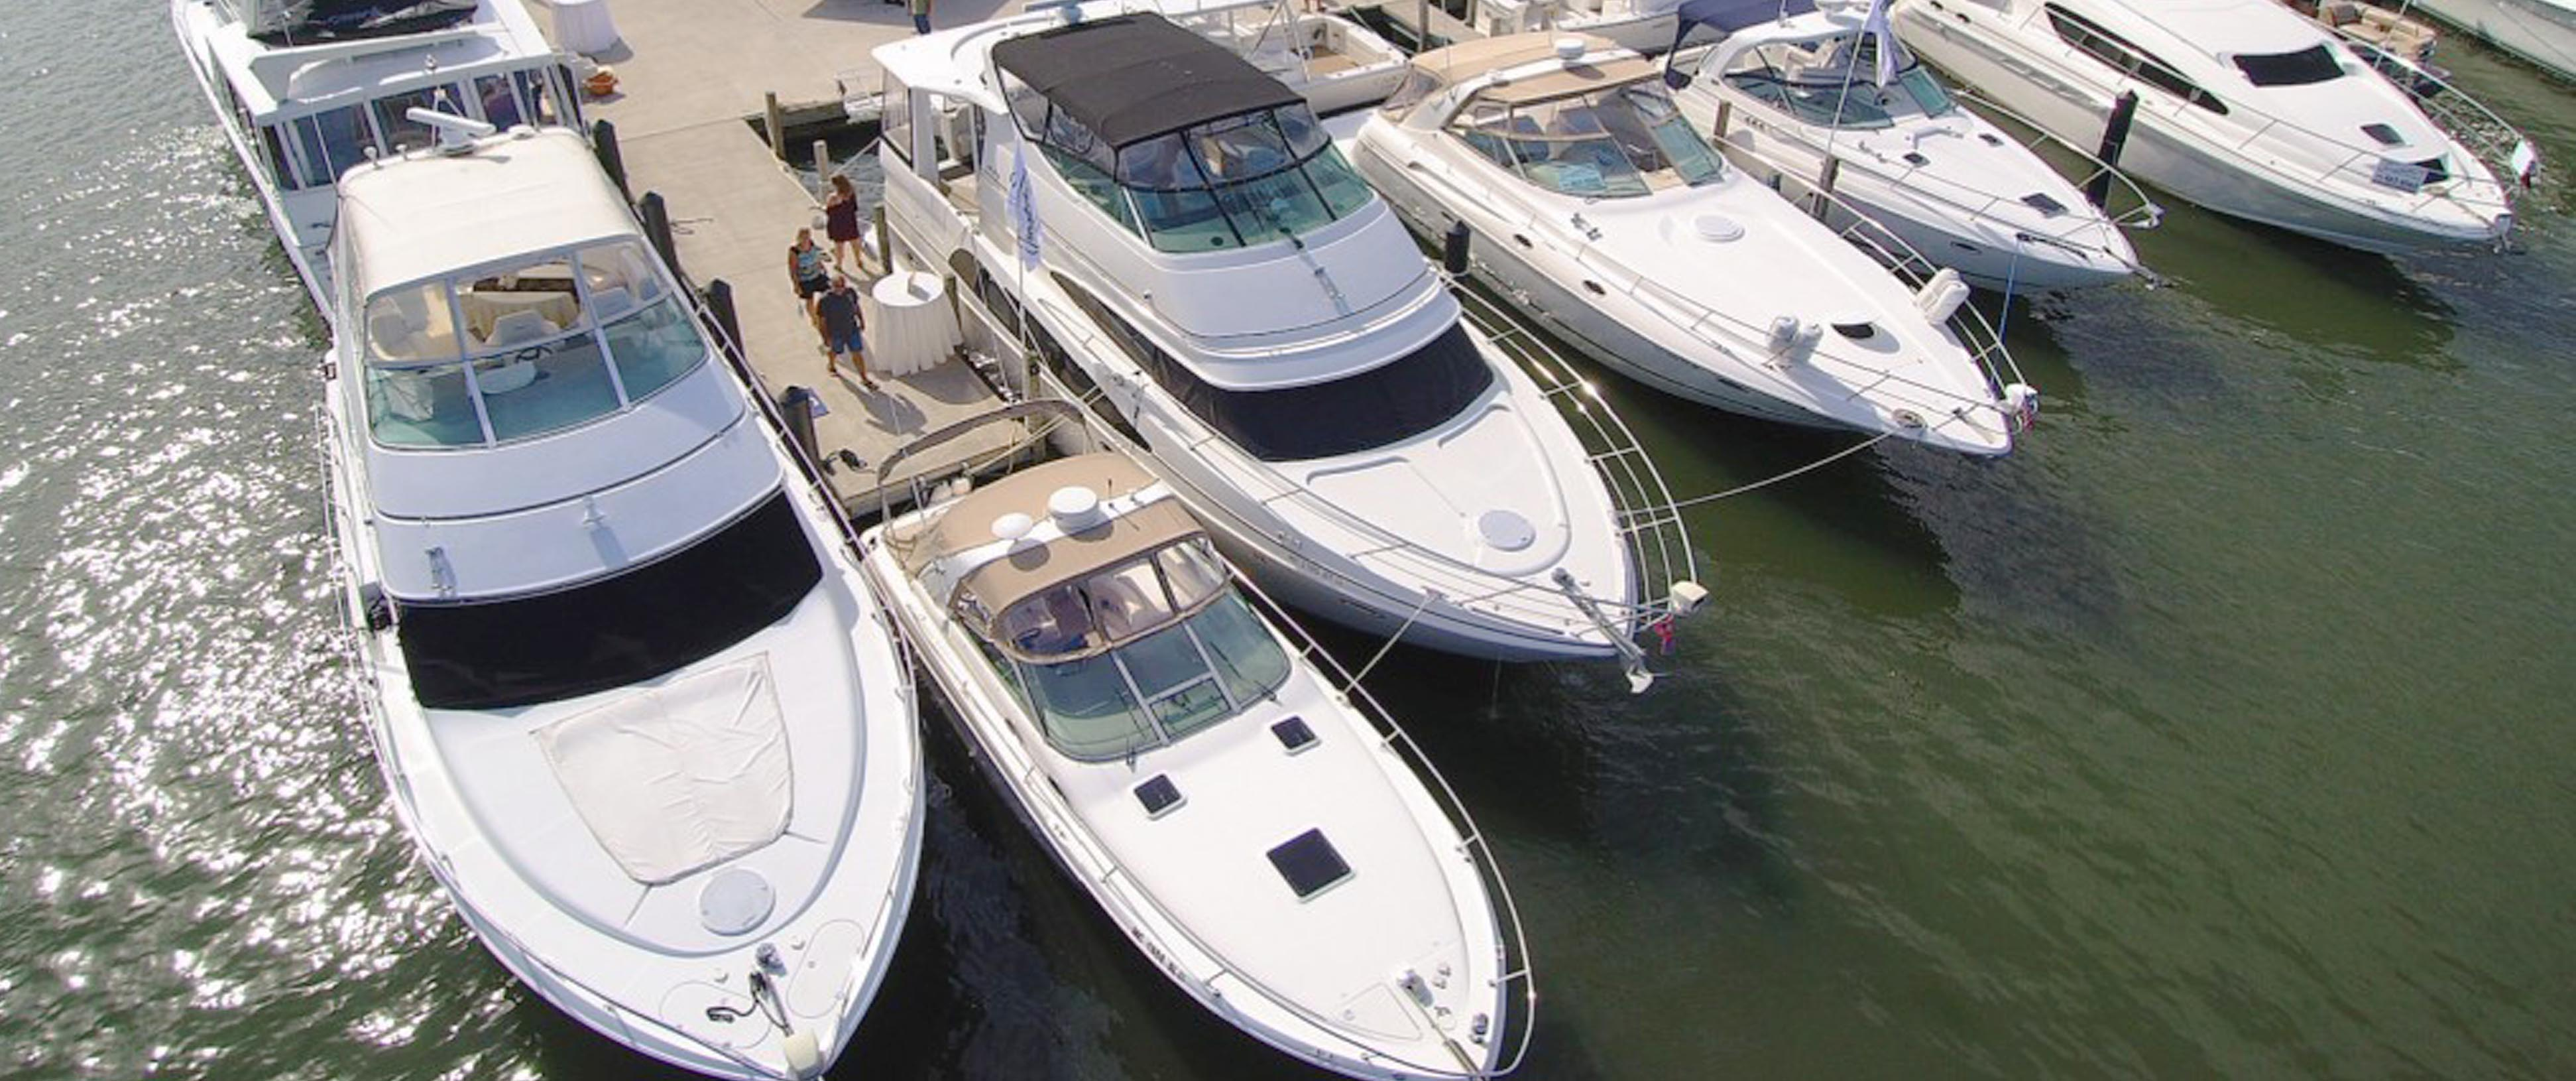 Temptation Yacht Sales | Your Online Freshwater Boat Brokerage